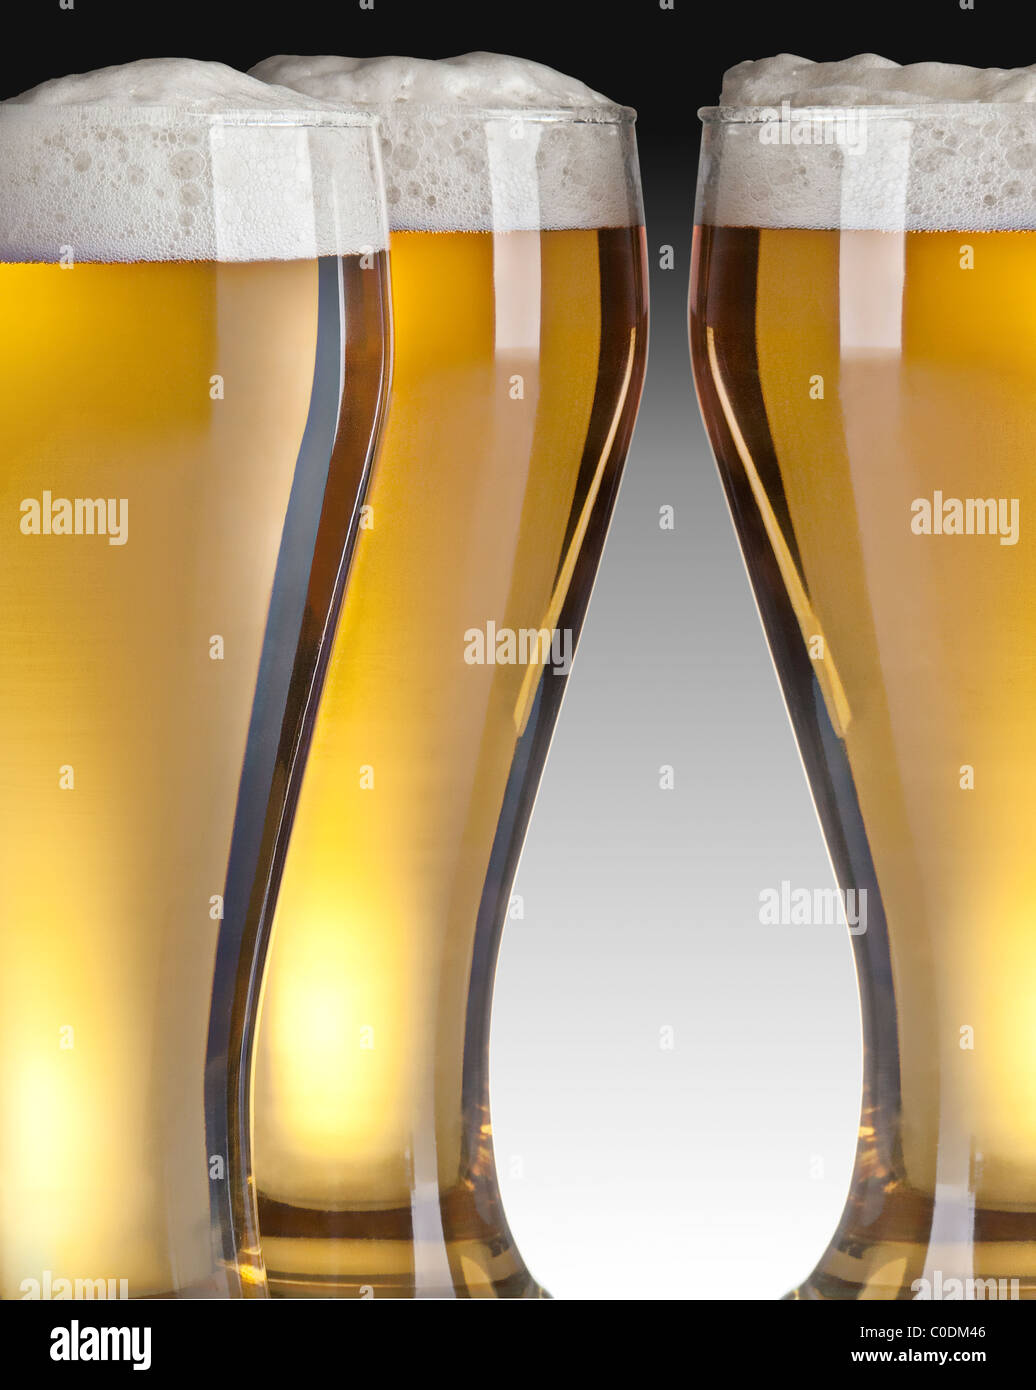 three glasses of beer on gray background - Stock Image